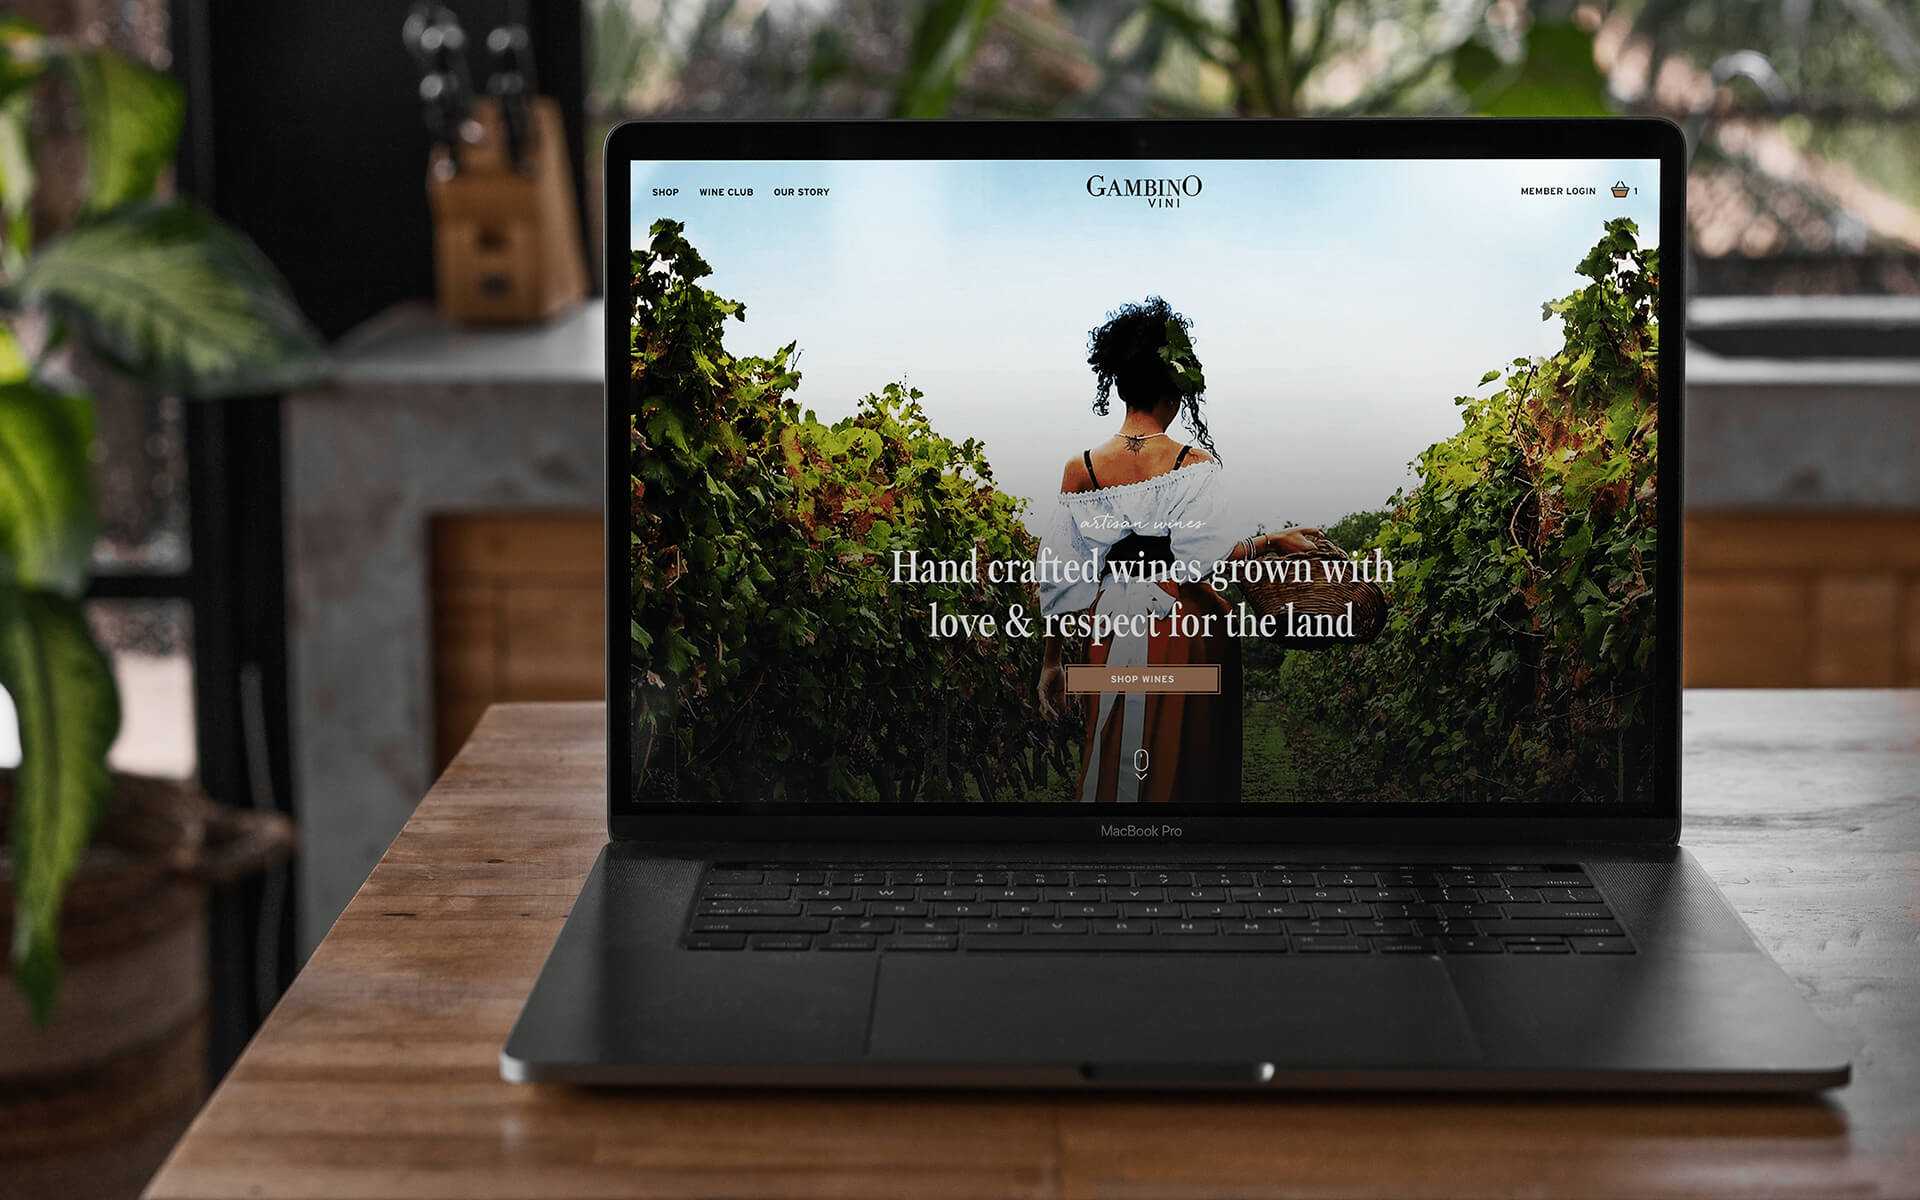 Laptop Showing Gambino Winery Website With A Woman In A Vineyard